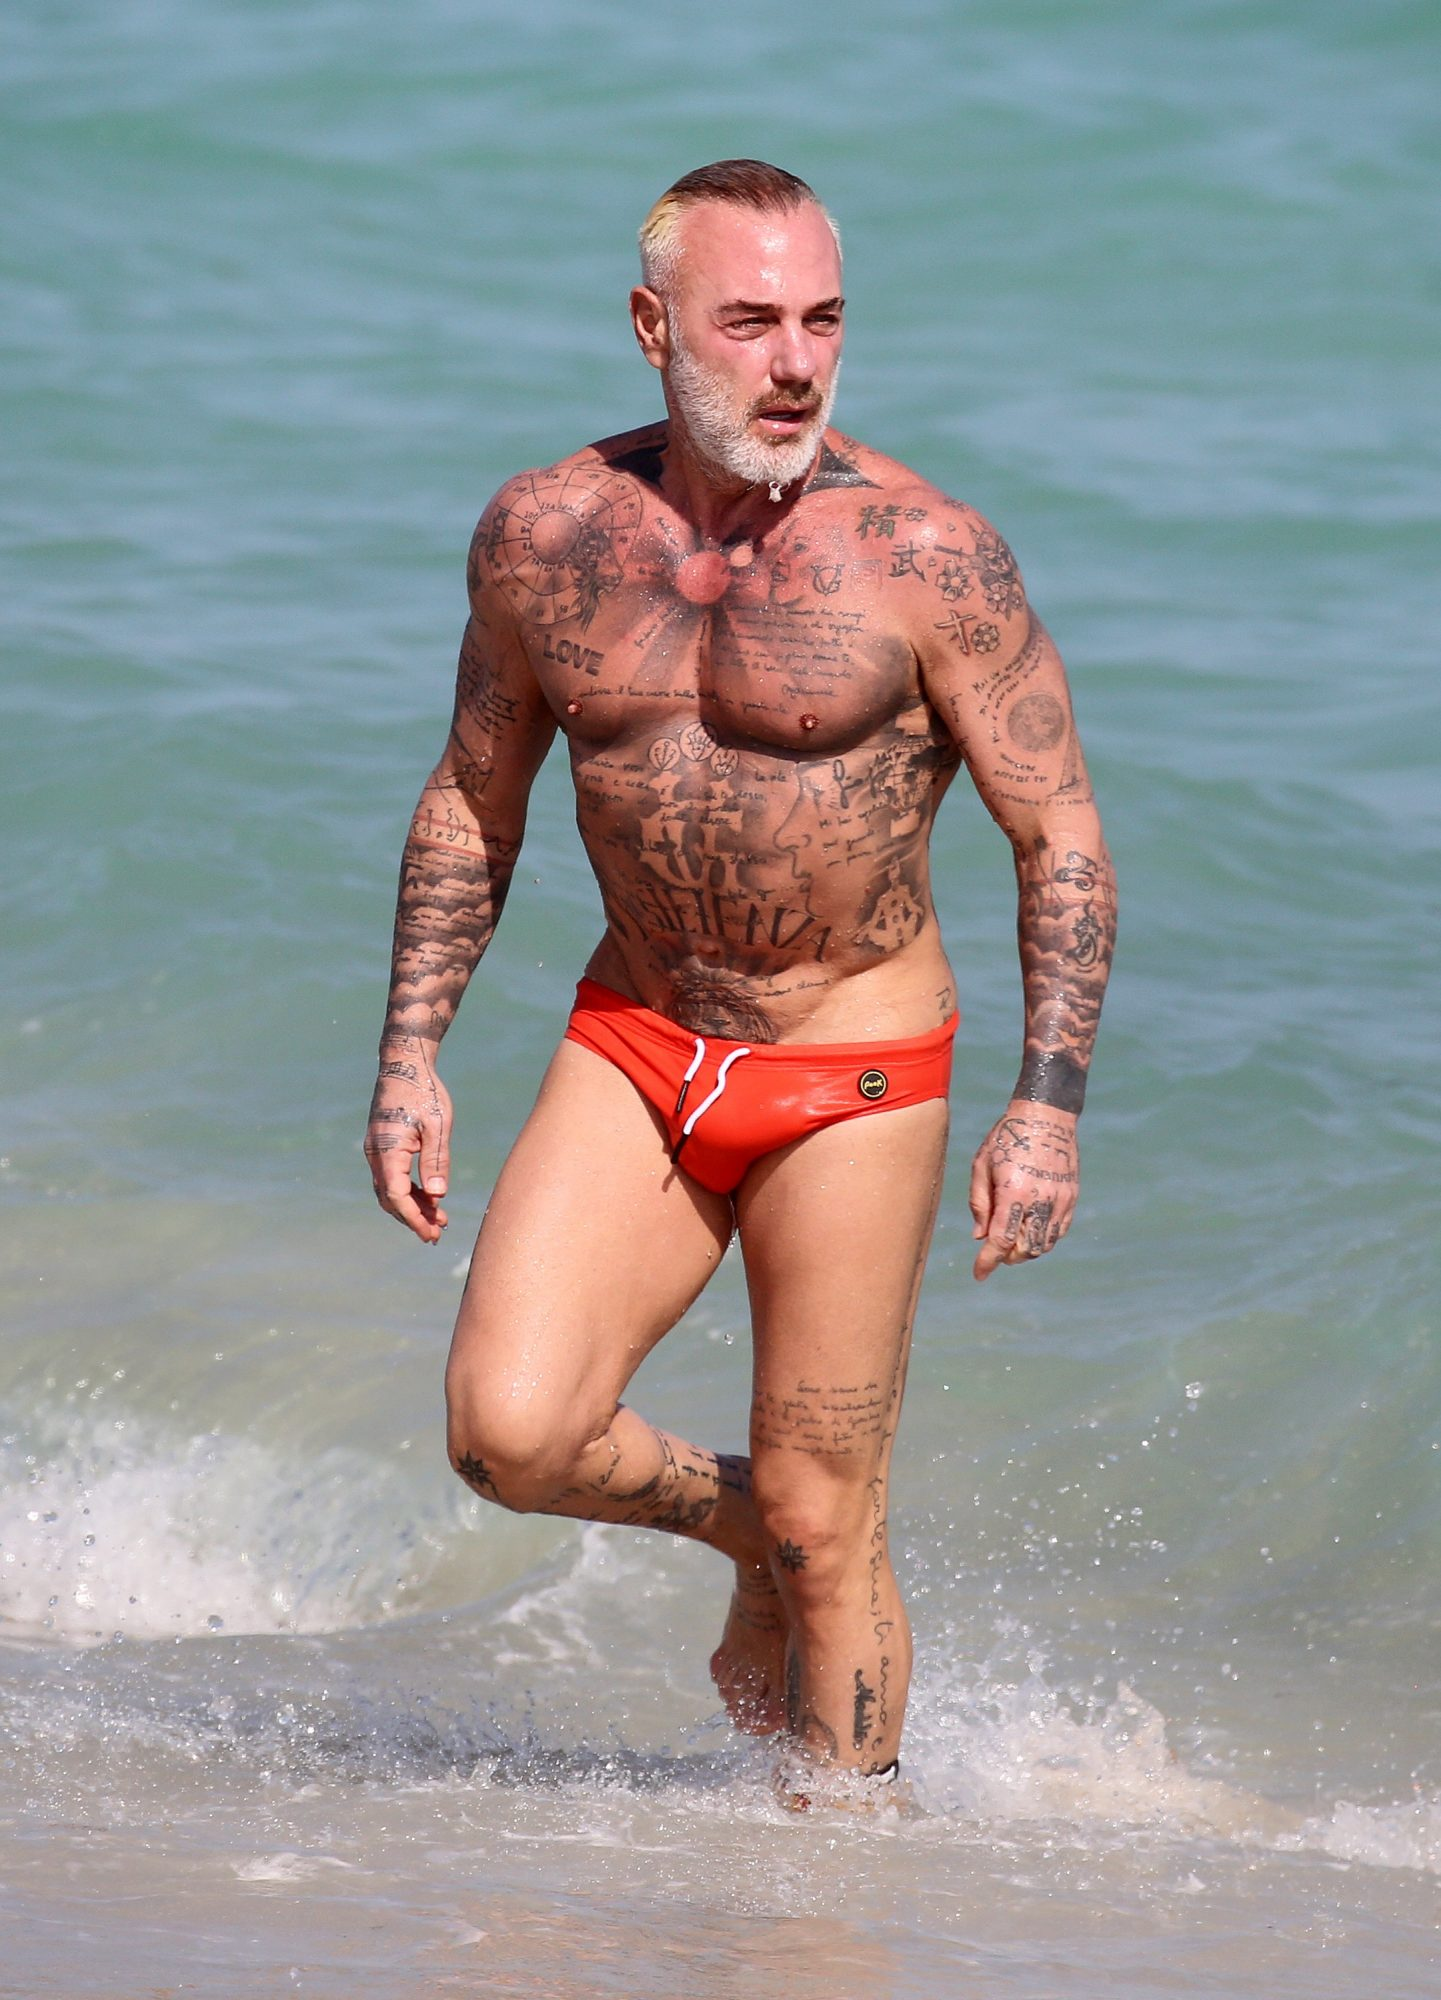 DJ Gianluca Vacchi shows off his tattoos in a tiny speedo on the beach in Miami